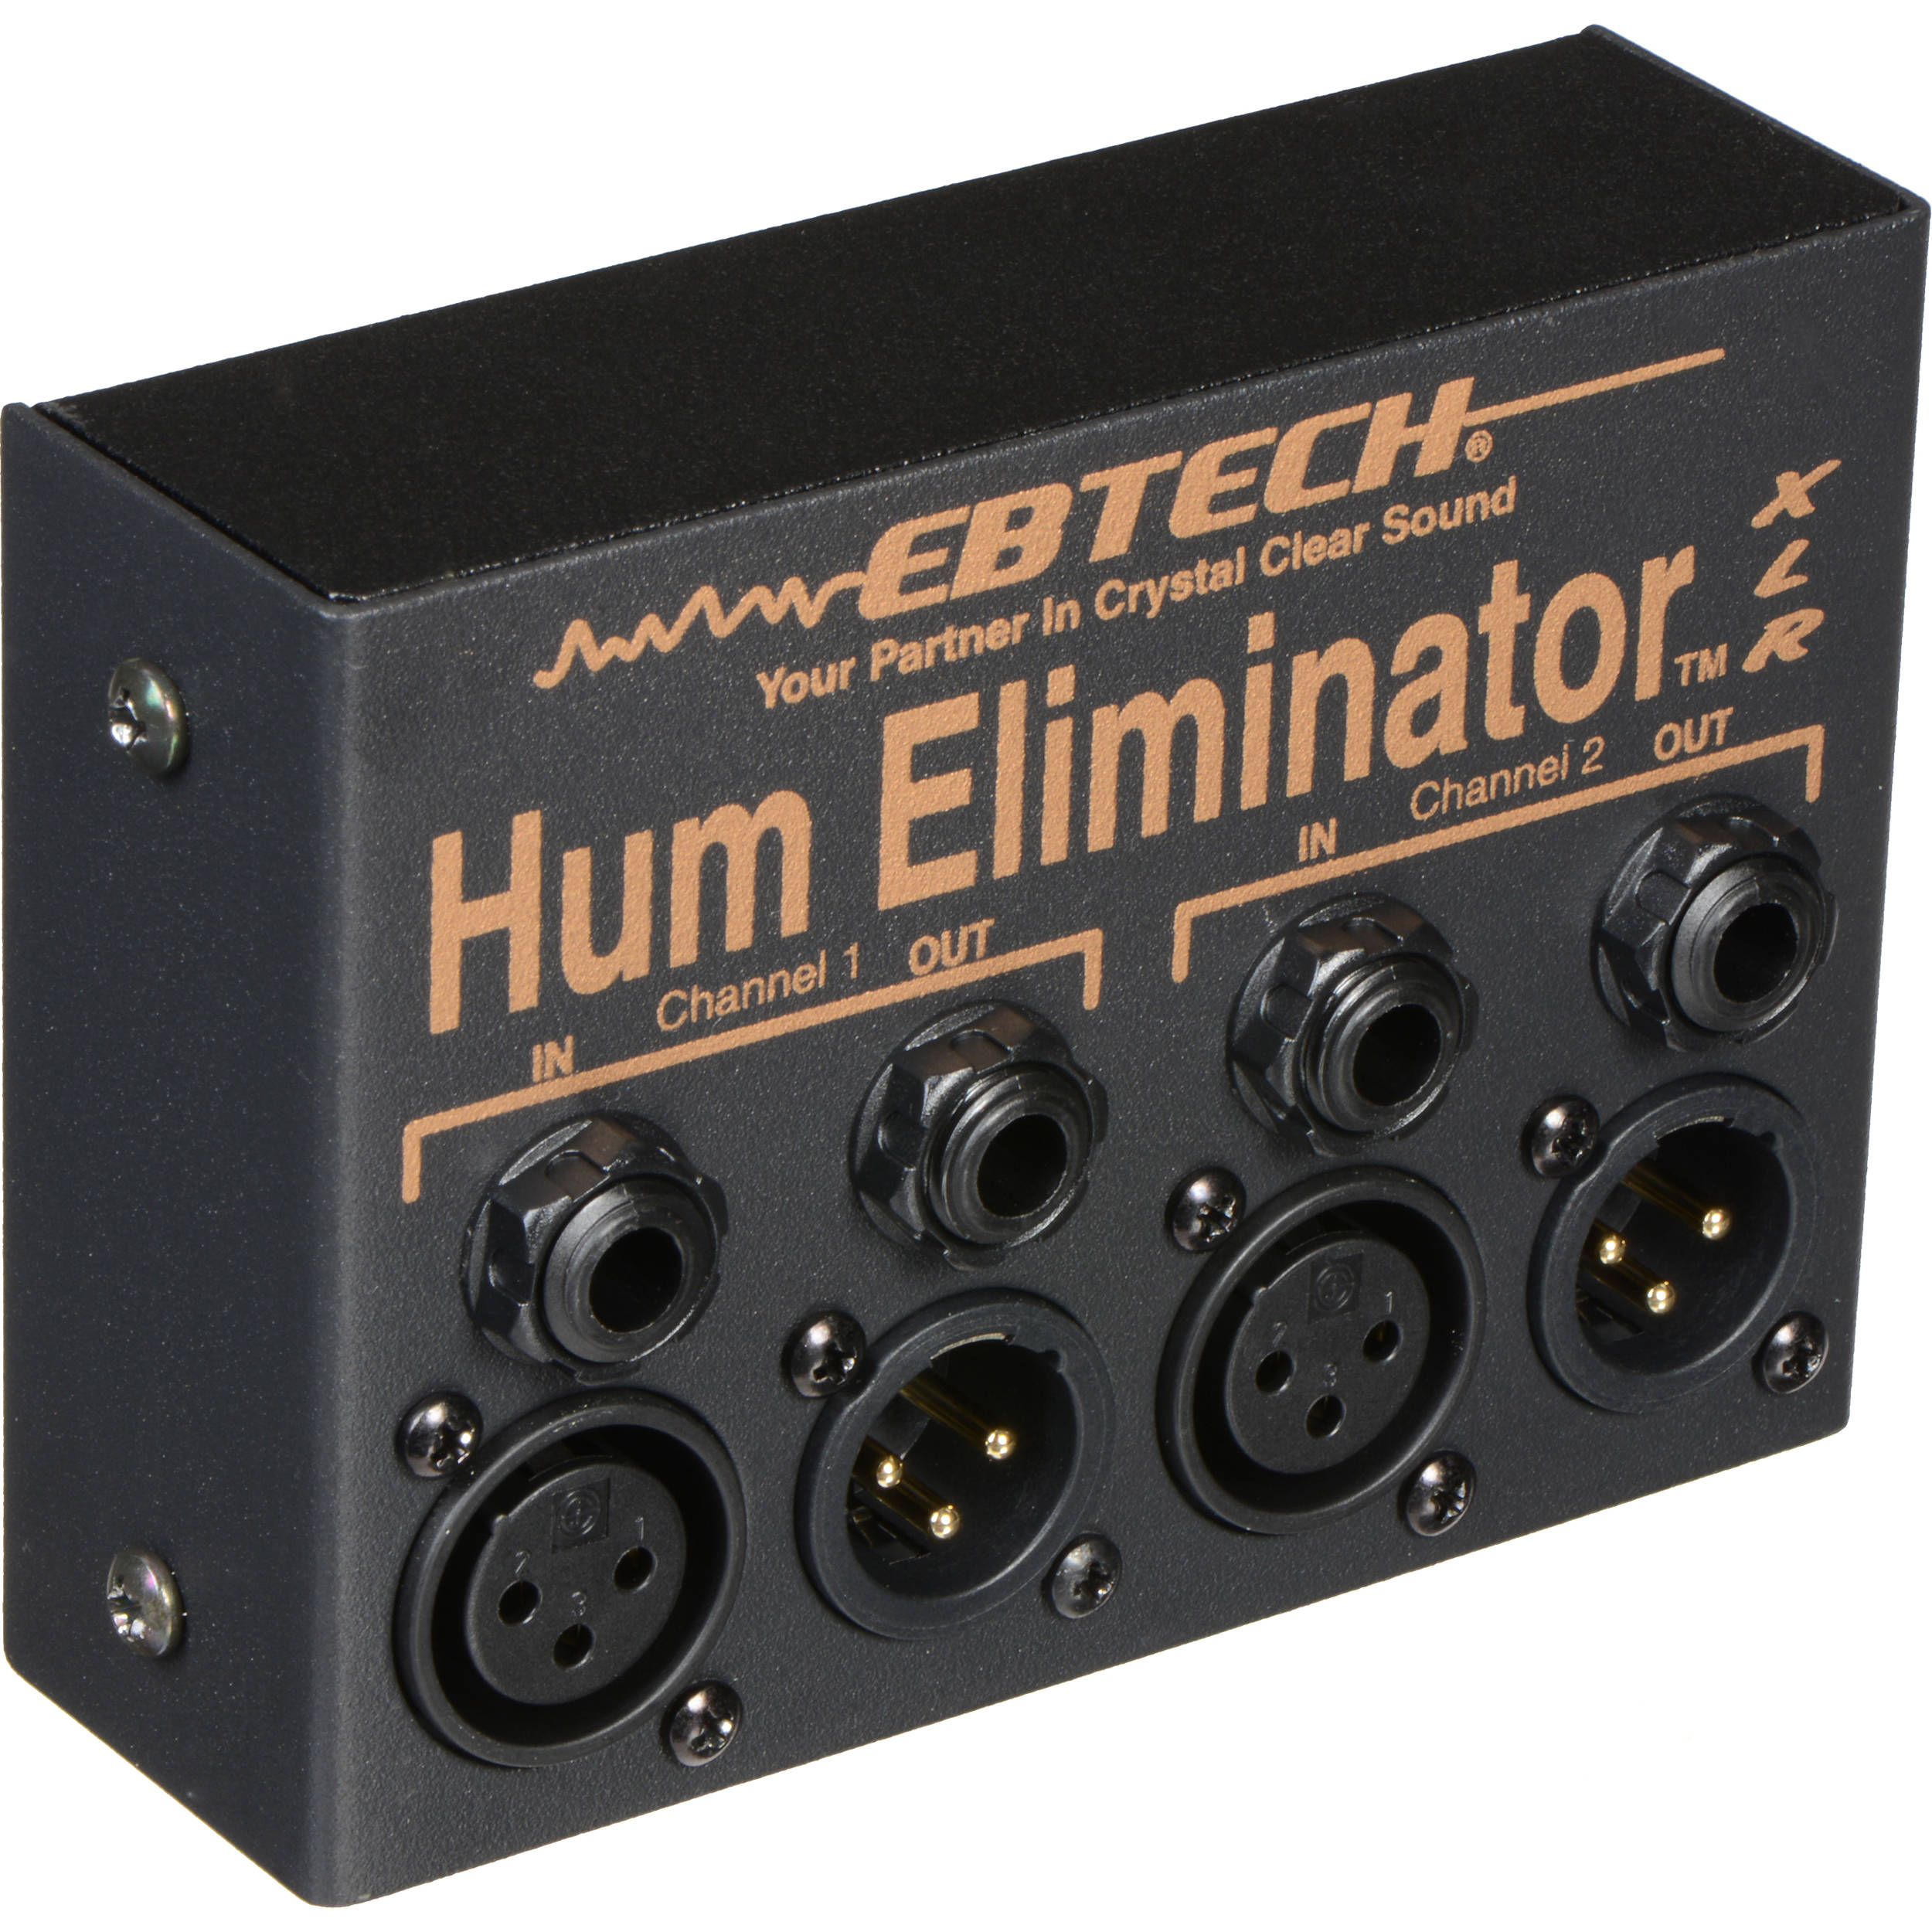 Hum Eliminators Bh Photo Video 3 Way Switch Humming Ebtech He 2 Xlr Dual Channel Eliminator With Connectors